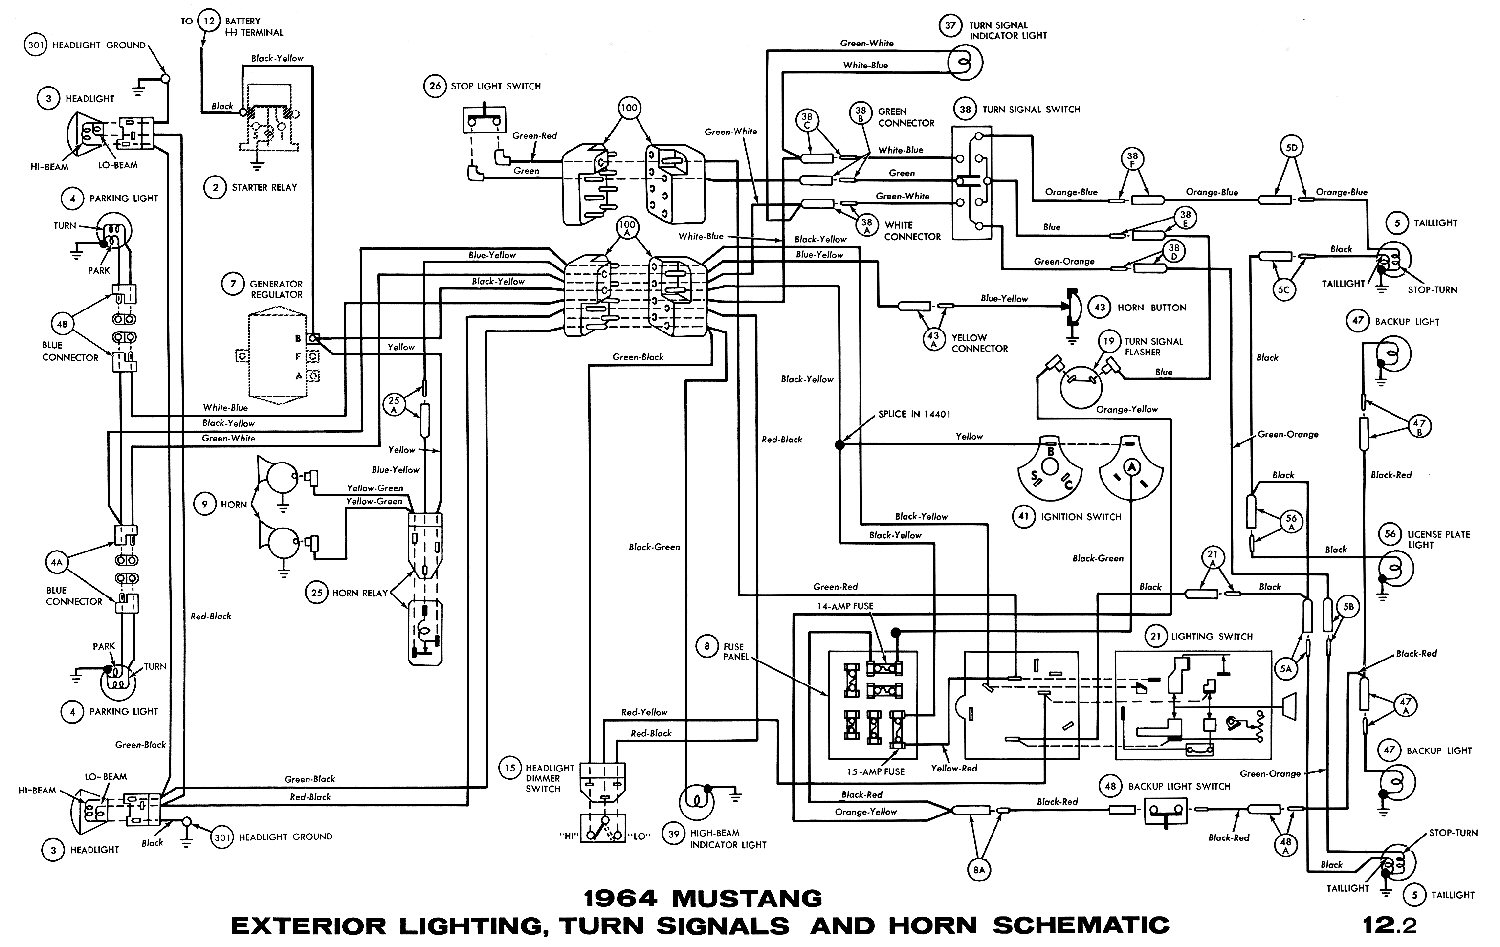 1964 Mustang Wiring Diagrams on 2003 ford mustang water pump